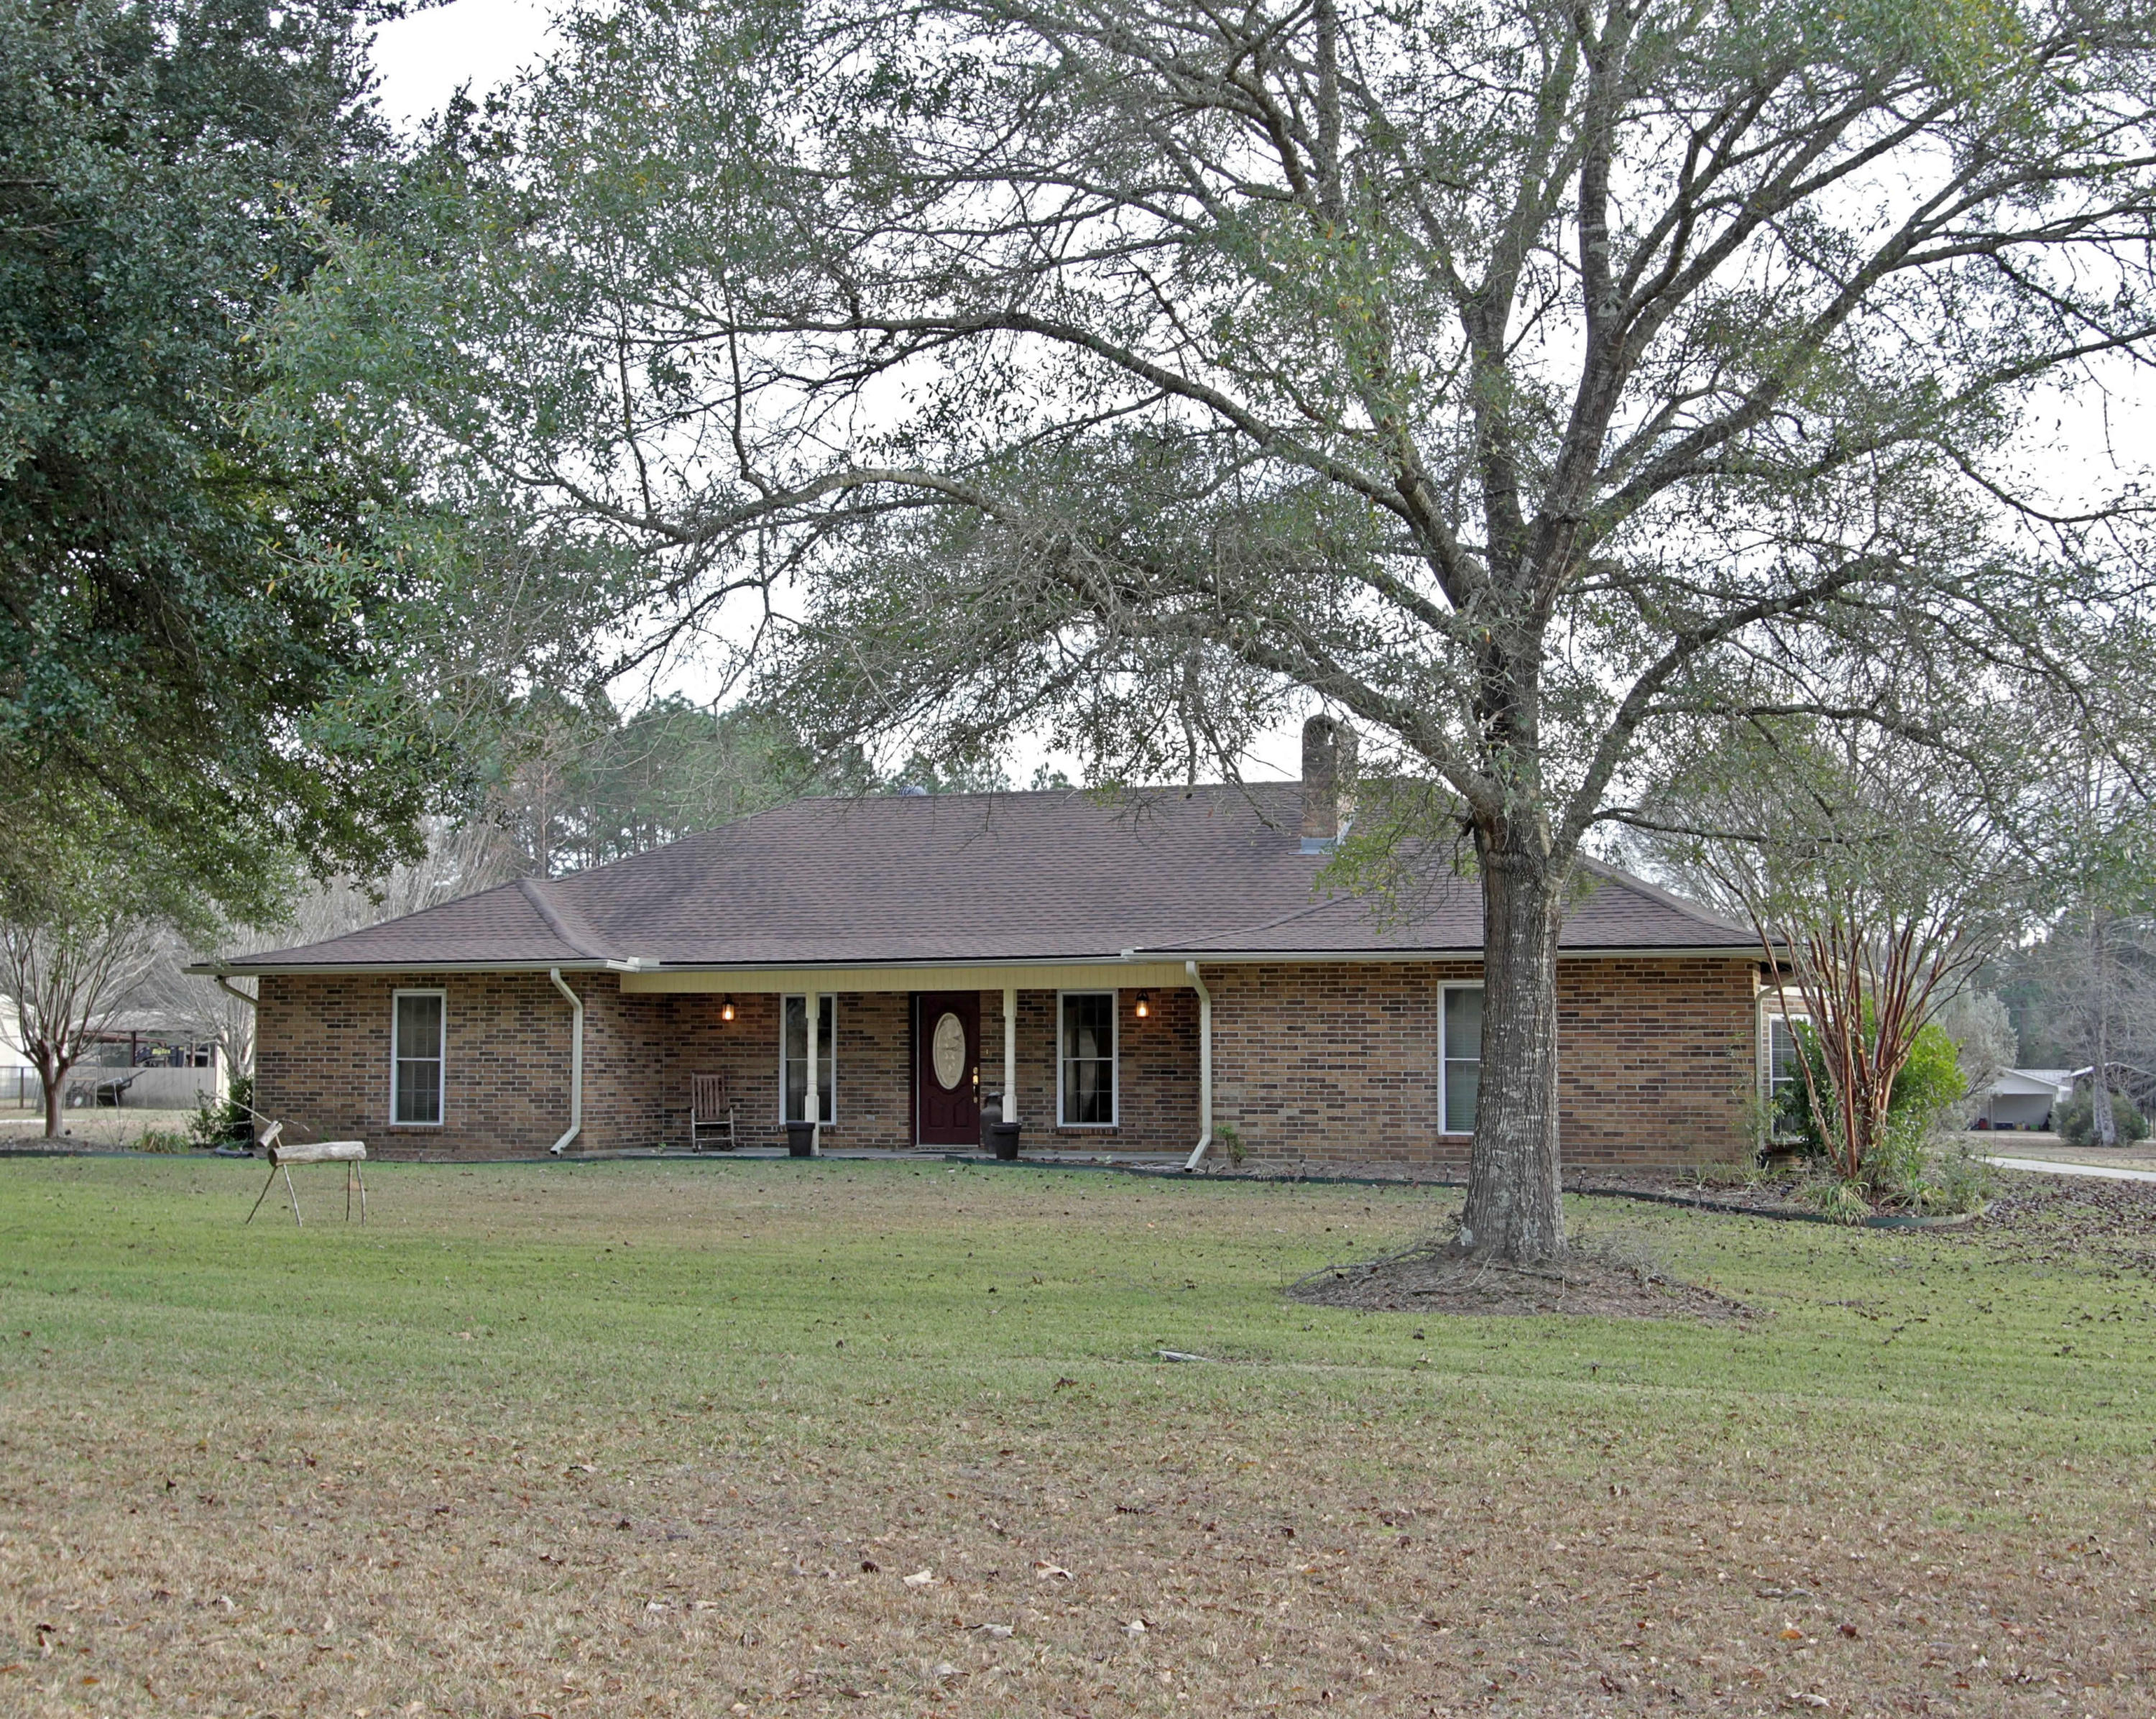 DeRidder home for sale, 9173 Main St, DeRidder LA - $244,900